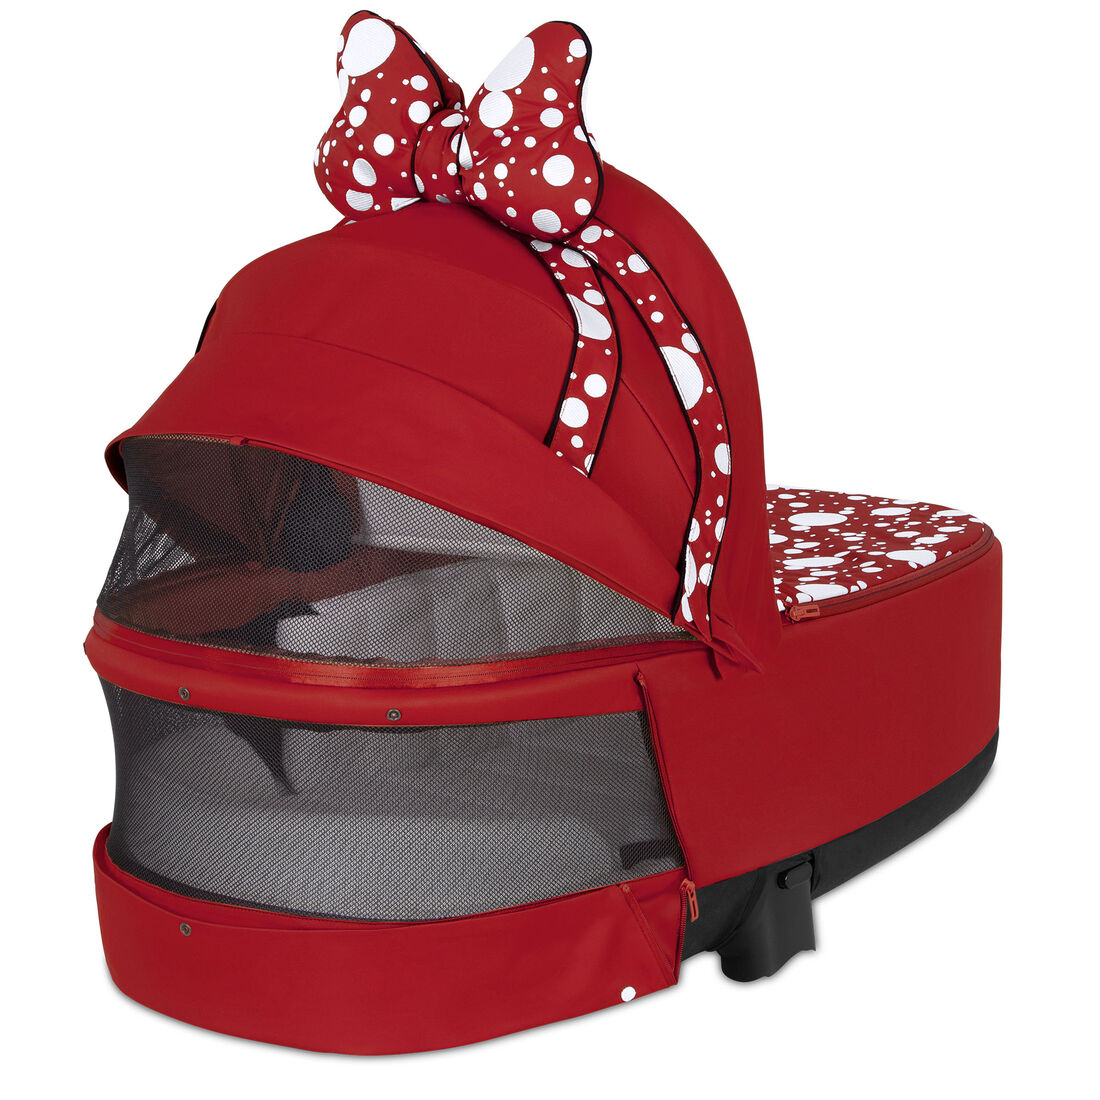 CYBEX Priam Lux Carry Cot - Petticoat Red in Petticoat Red large image number 4